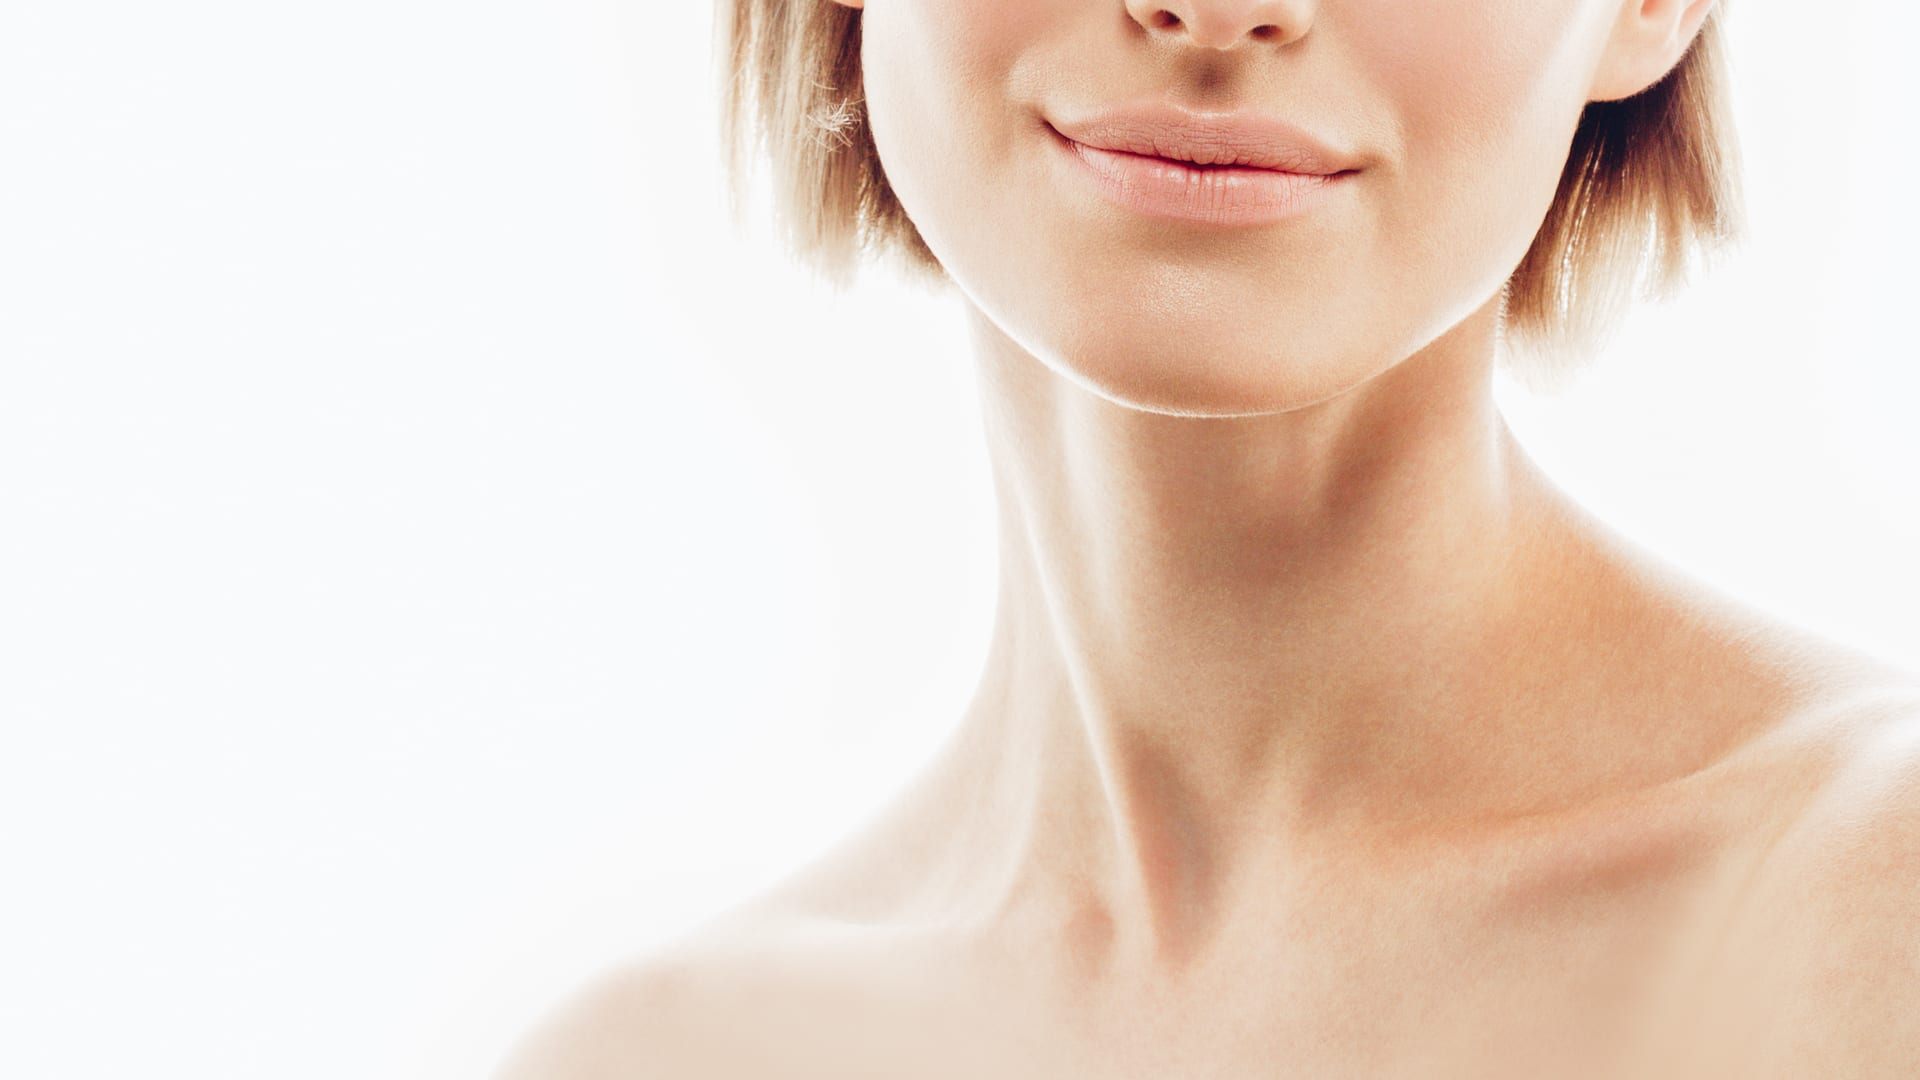 Which areas of the body require hyaluronic acid-based treatments the most?